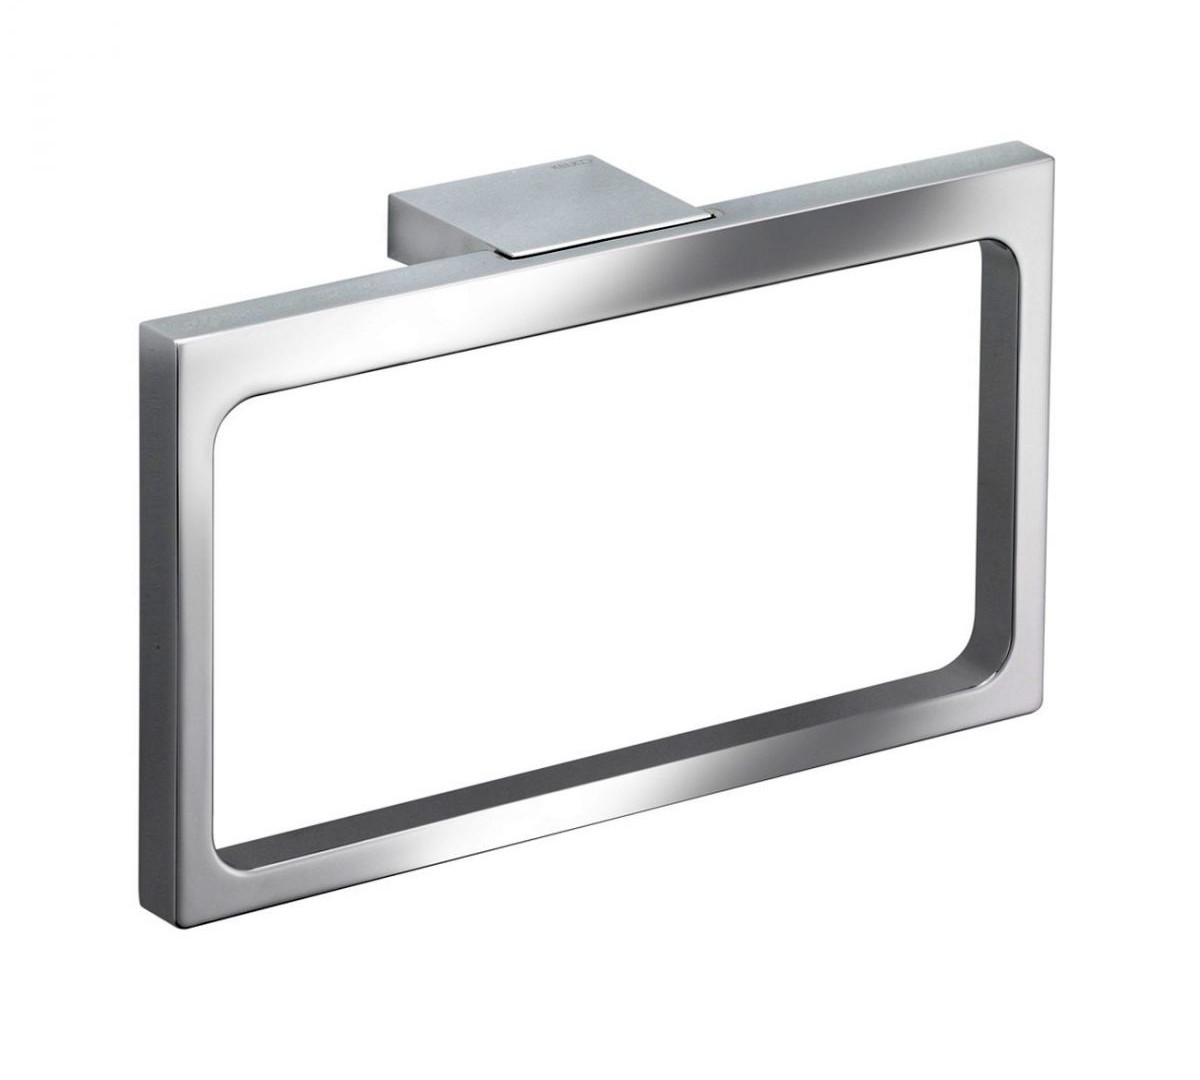 Keuco Edition 11 Towel Ring Chrome-Plate